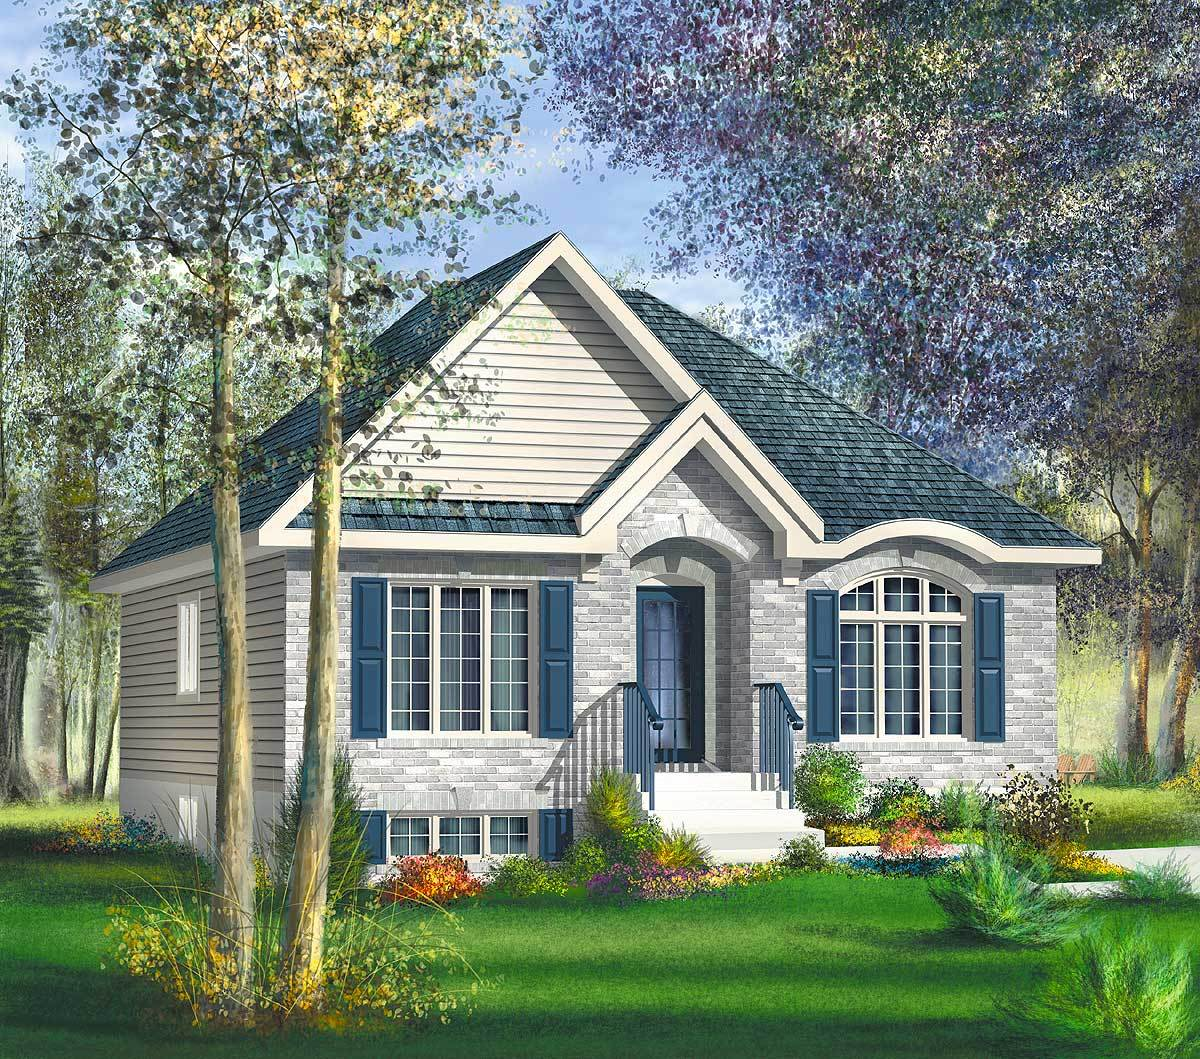 Cozy bungalow cottage 80401pm architectural designs for Cozy cottage plans